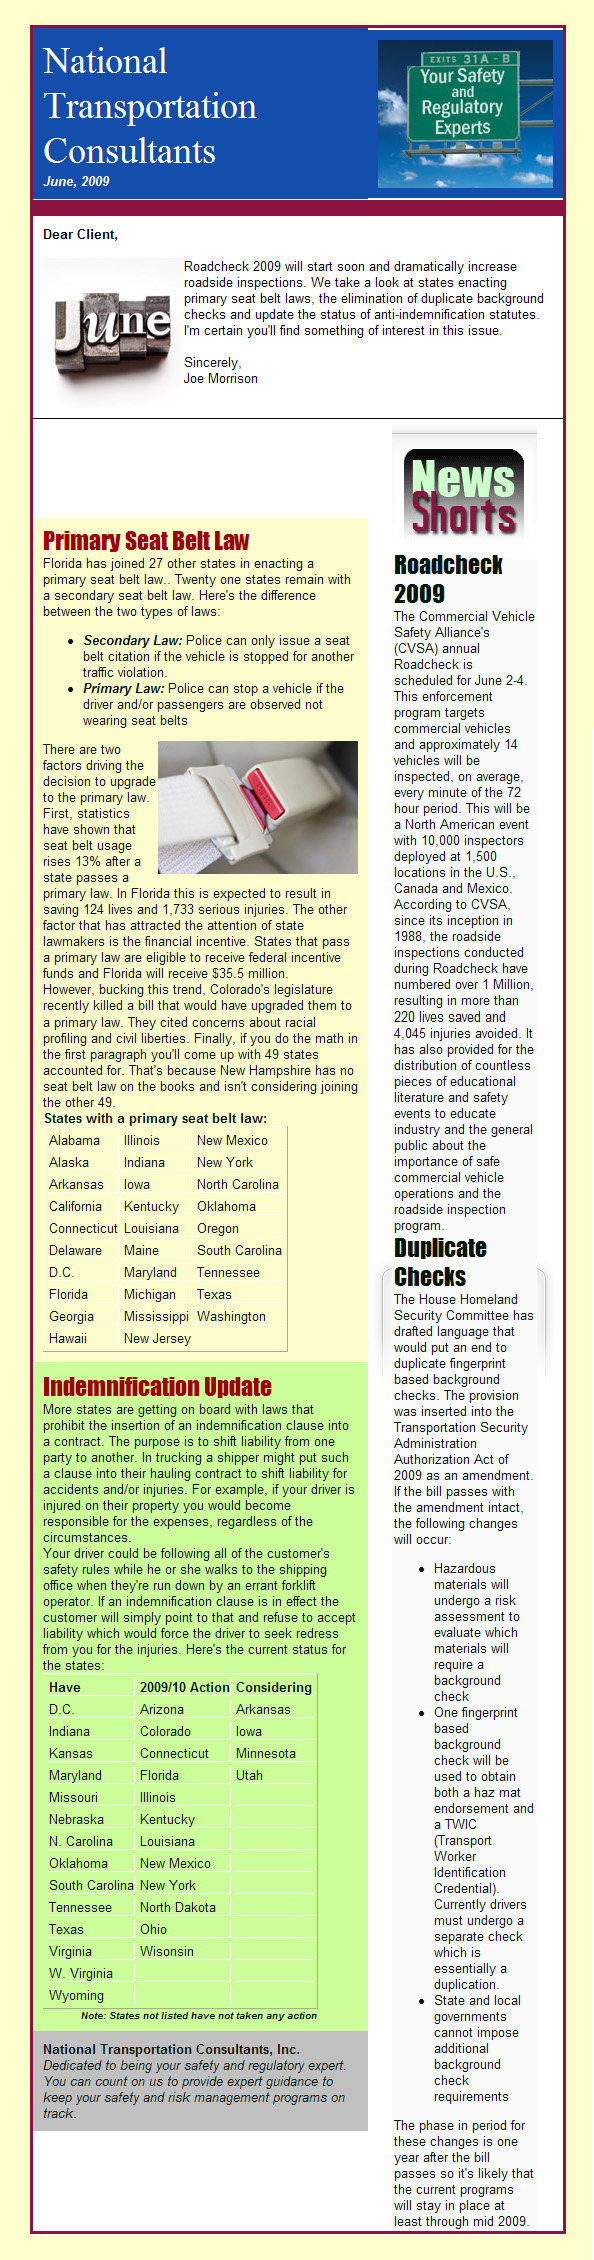 Roadcheck 2009, Primary Seat Belt Laws, Background Checks & More